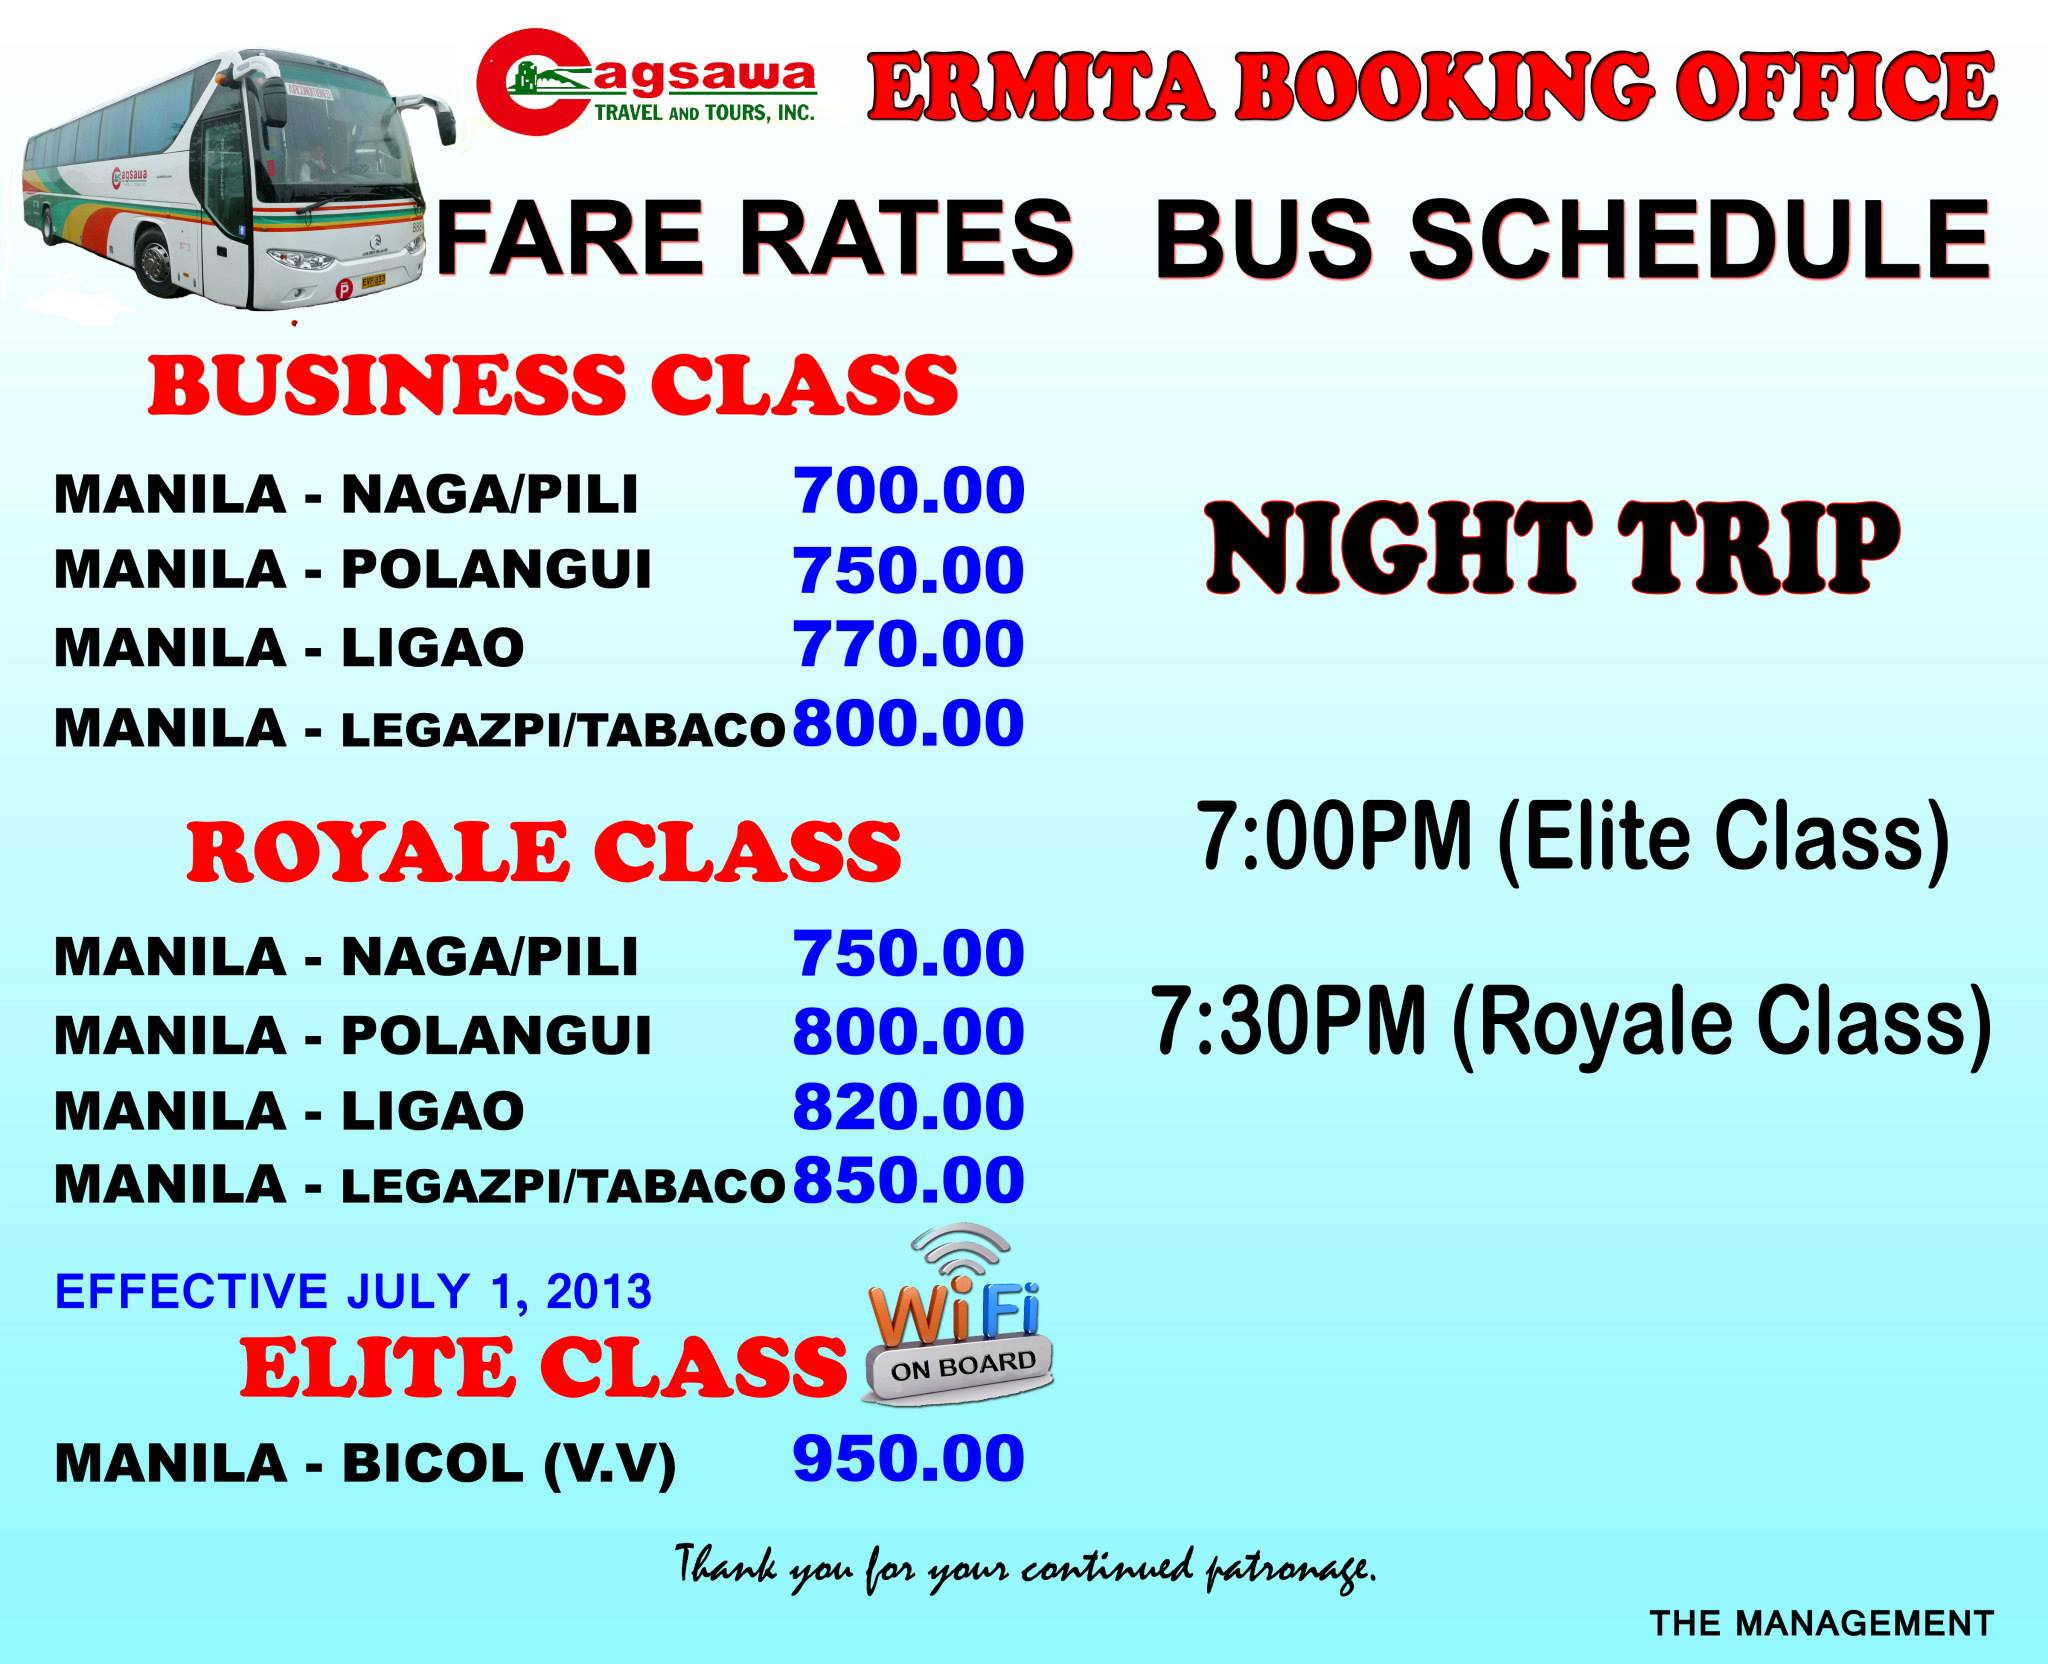 cagsawa-bus-schedules-and-fares.jpg